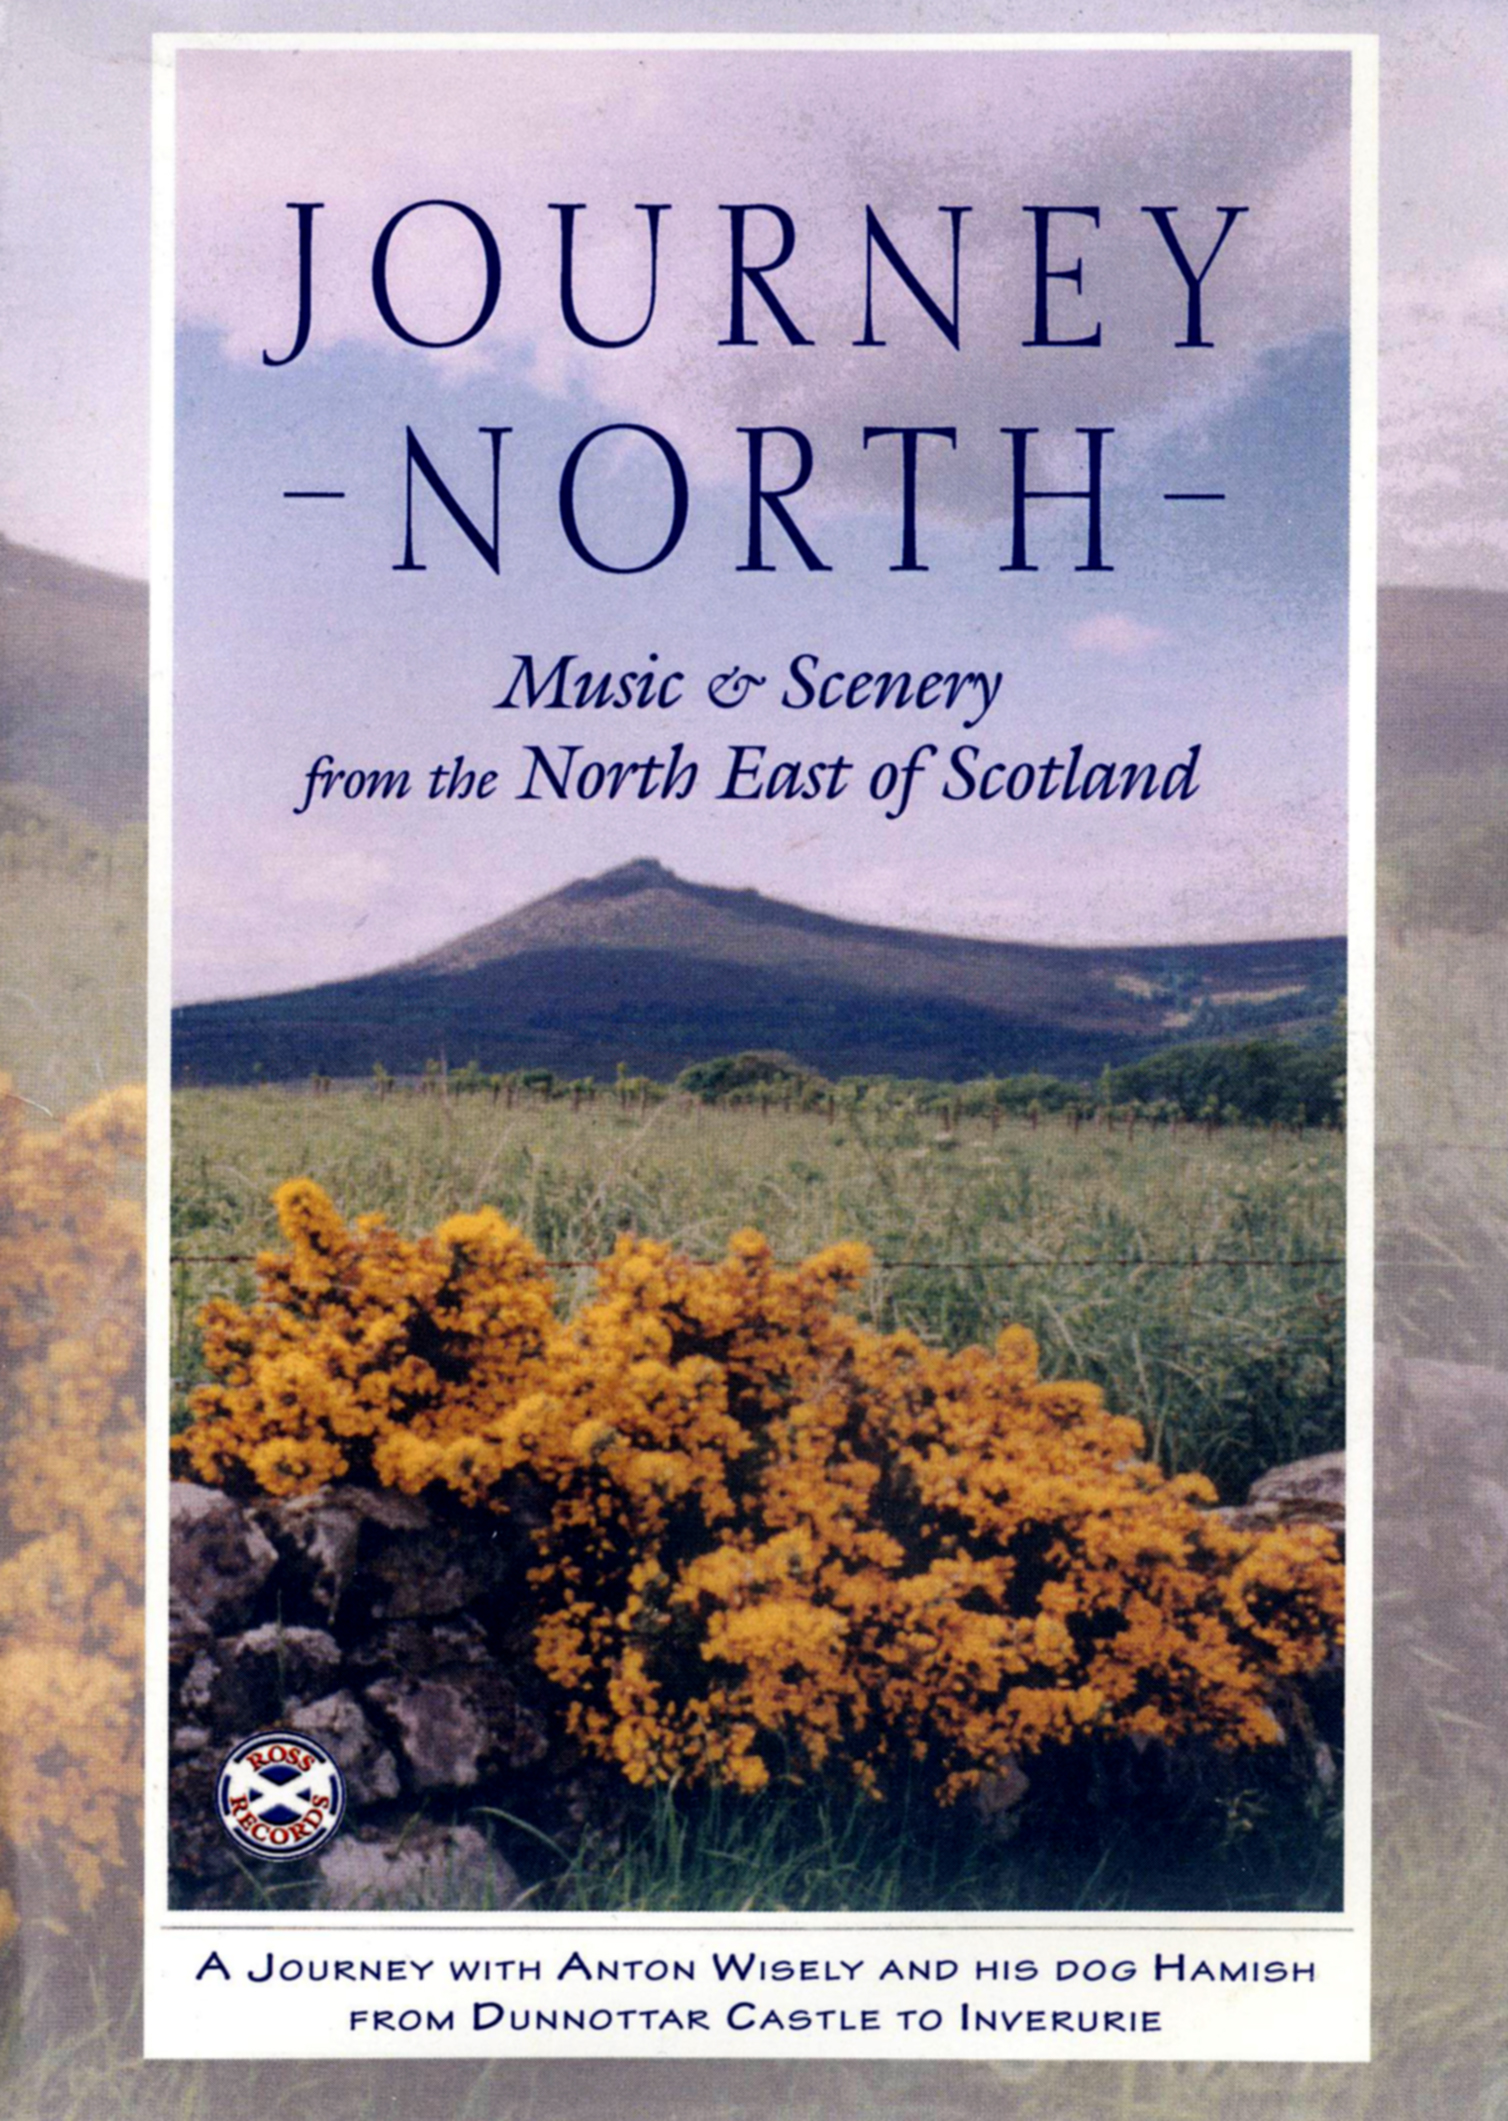 Journey North - Music & Scenery from the North East of Scotland